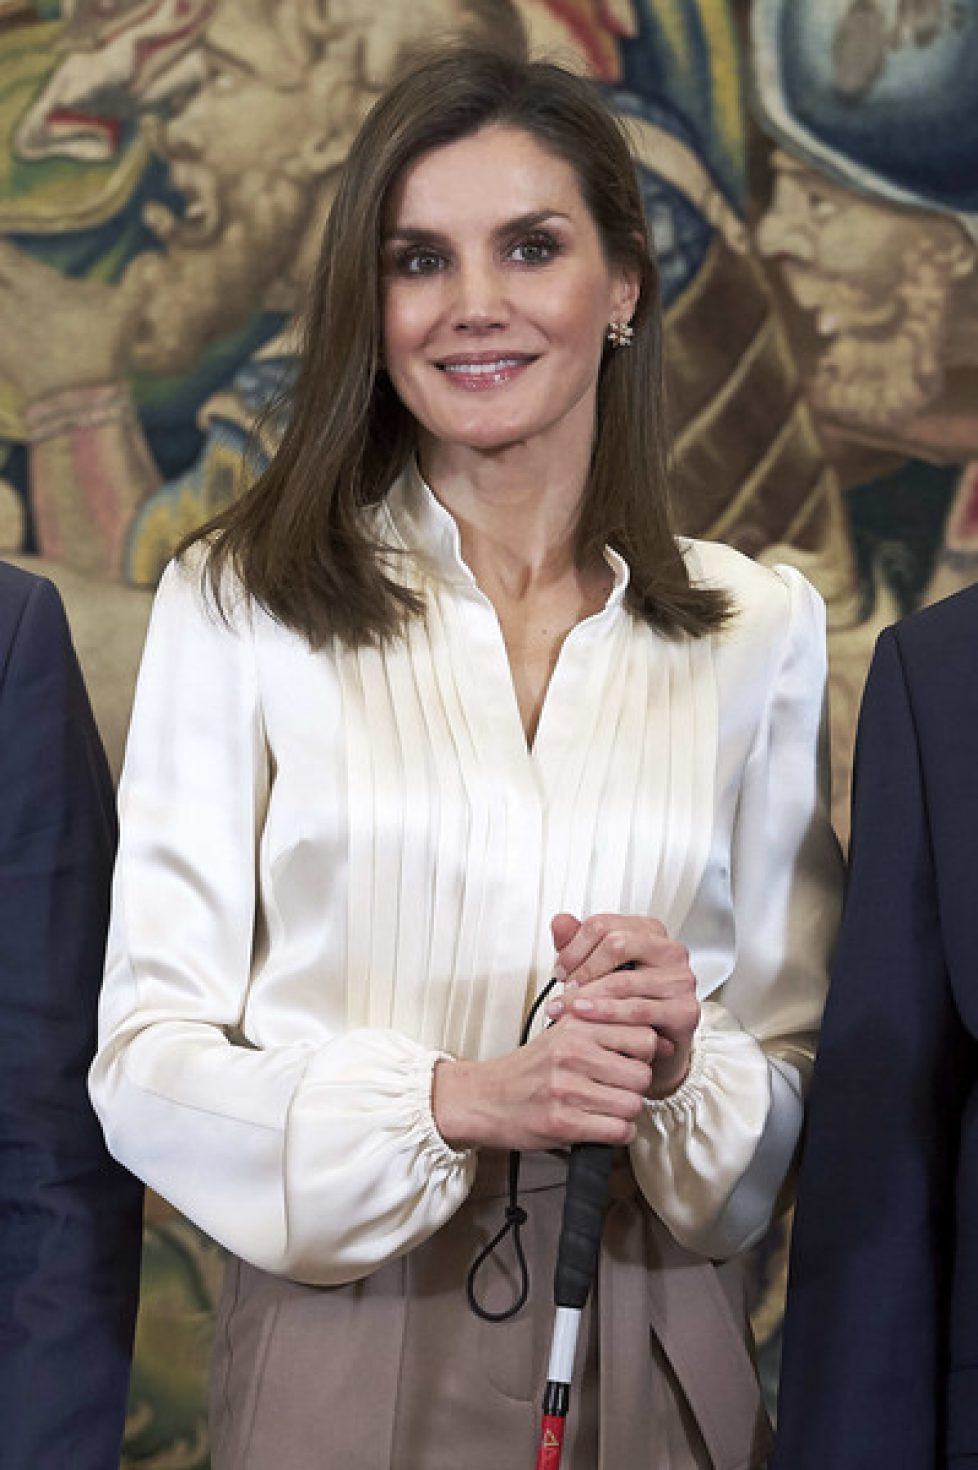 Queen+Letizia+Spain+Attend+Audiences+Zarzuela+dmmCFEXNzOal